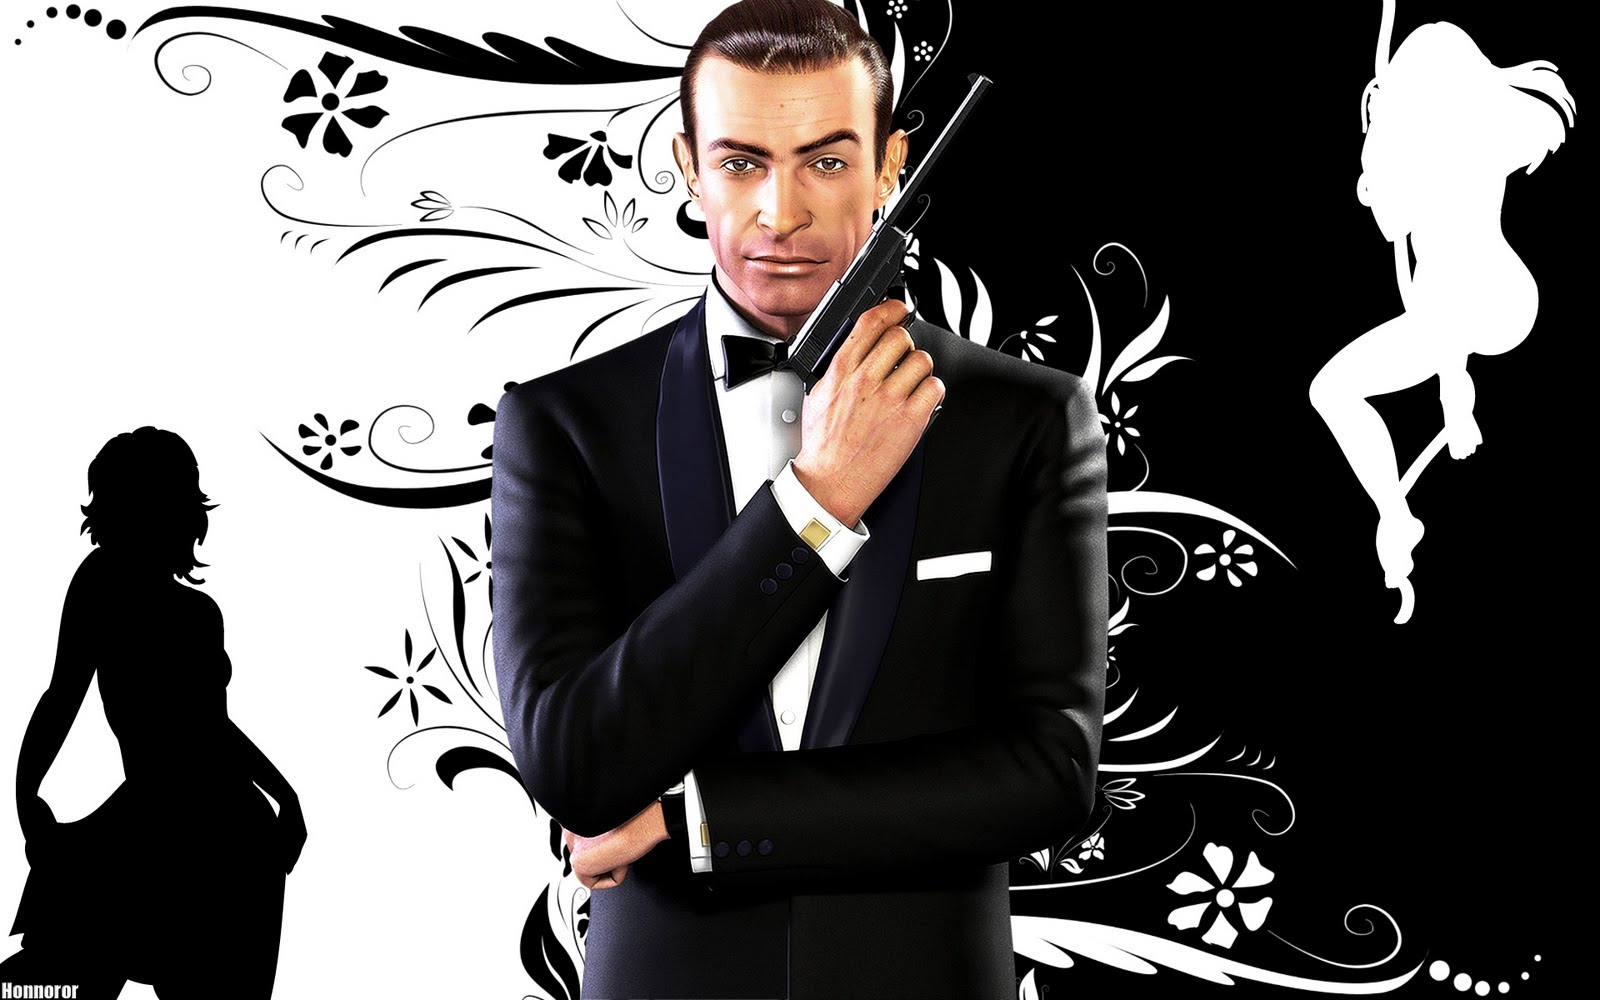 Honnoror Wallpapers: 007 James Bond